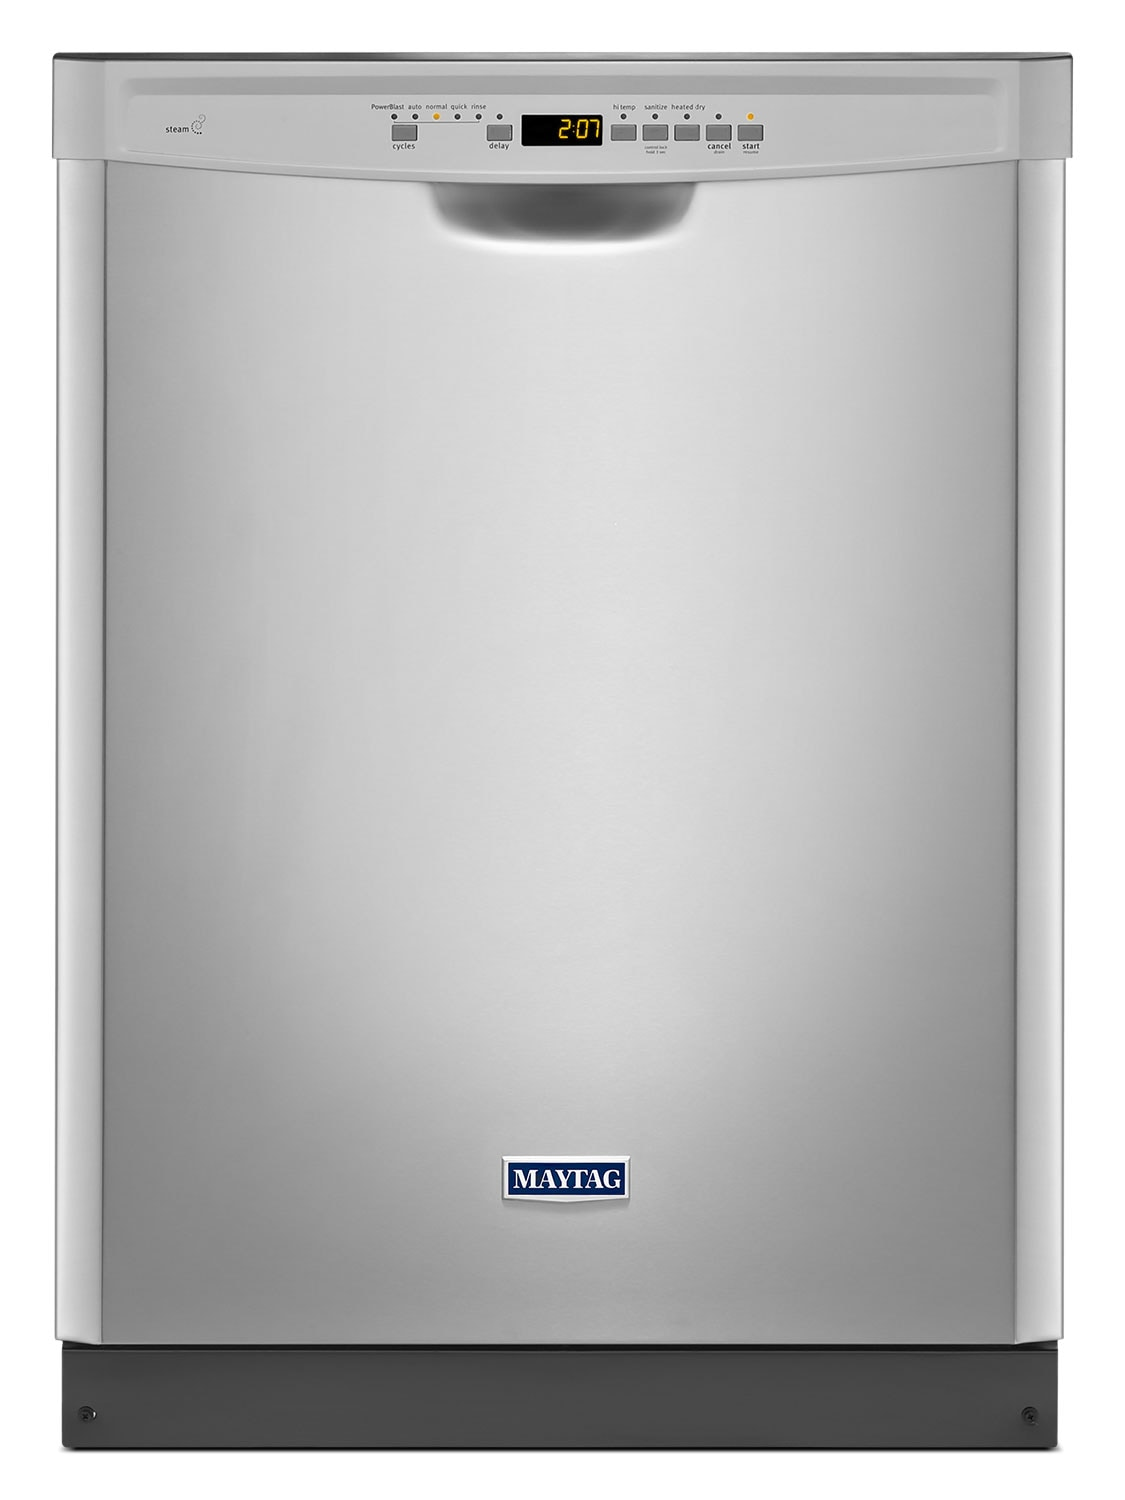 Maytag Fingerprint Resistant Stainless Steel 24